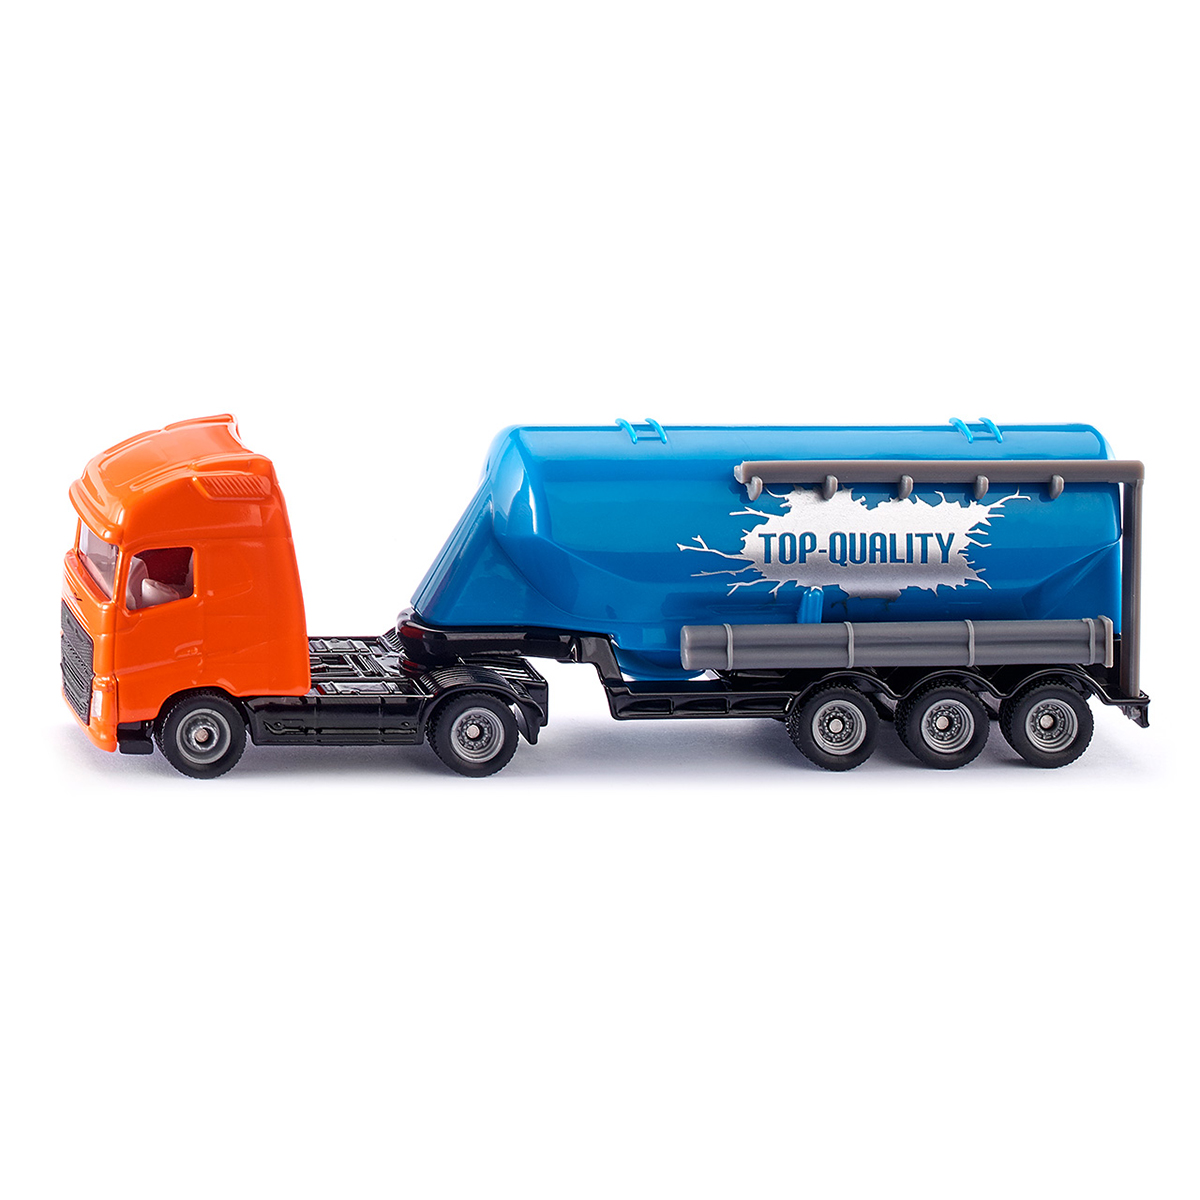 Truck with silo trailer(ジク・SIKU)1:87